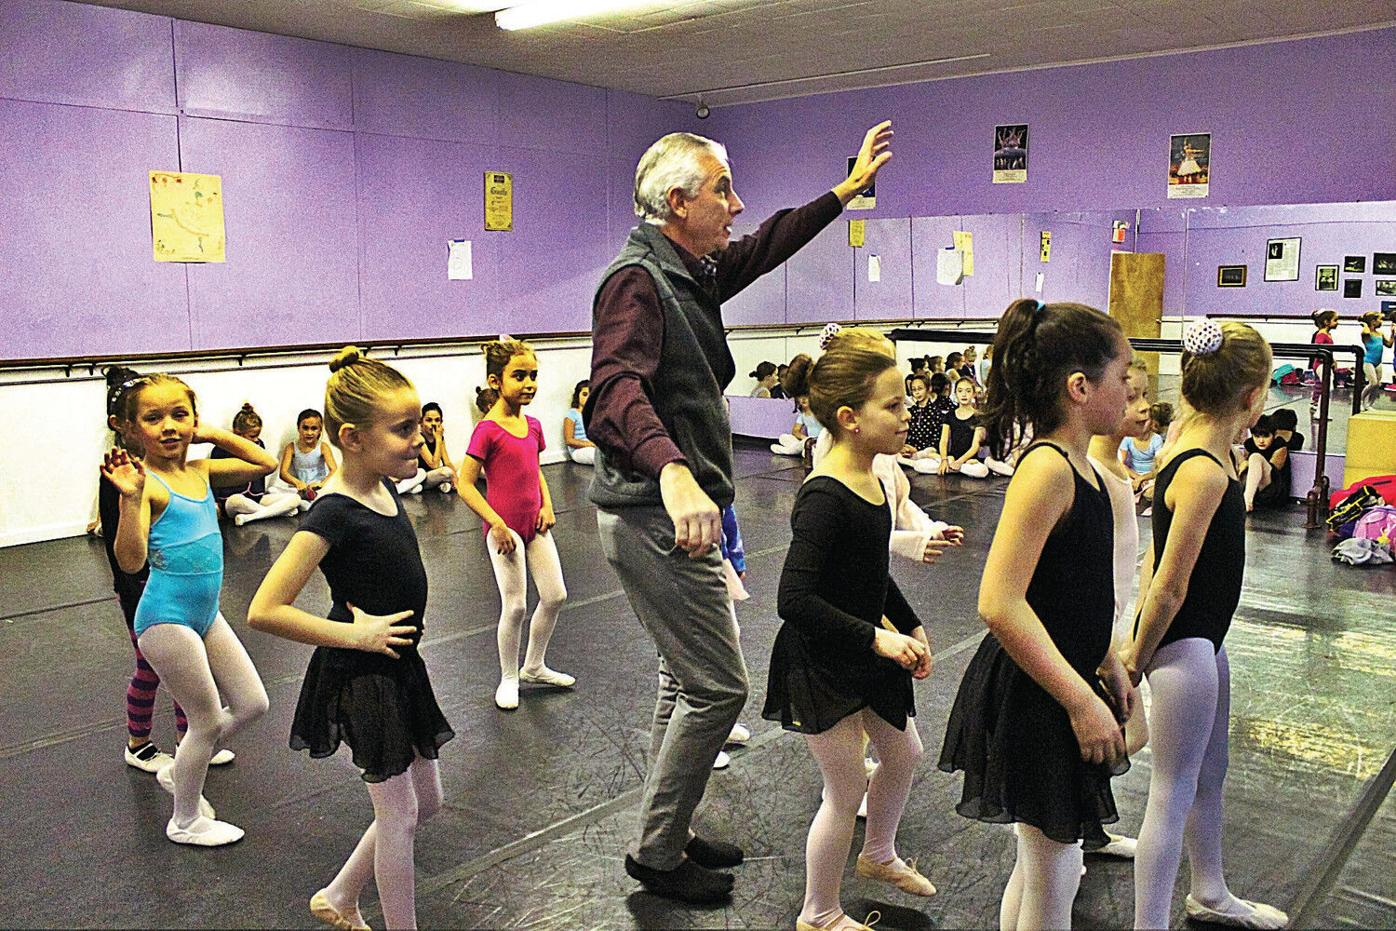 An unlikely, yet dedicated, Mother Ginger in 'The Nutcracker'